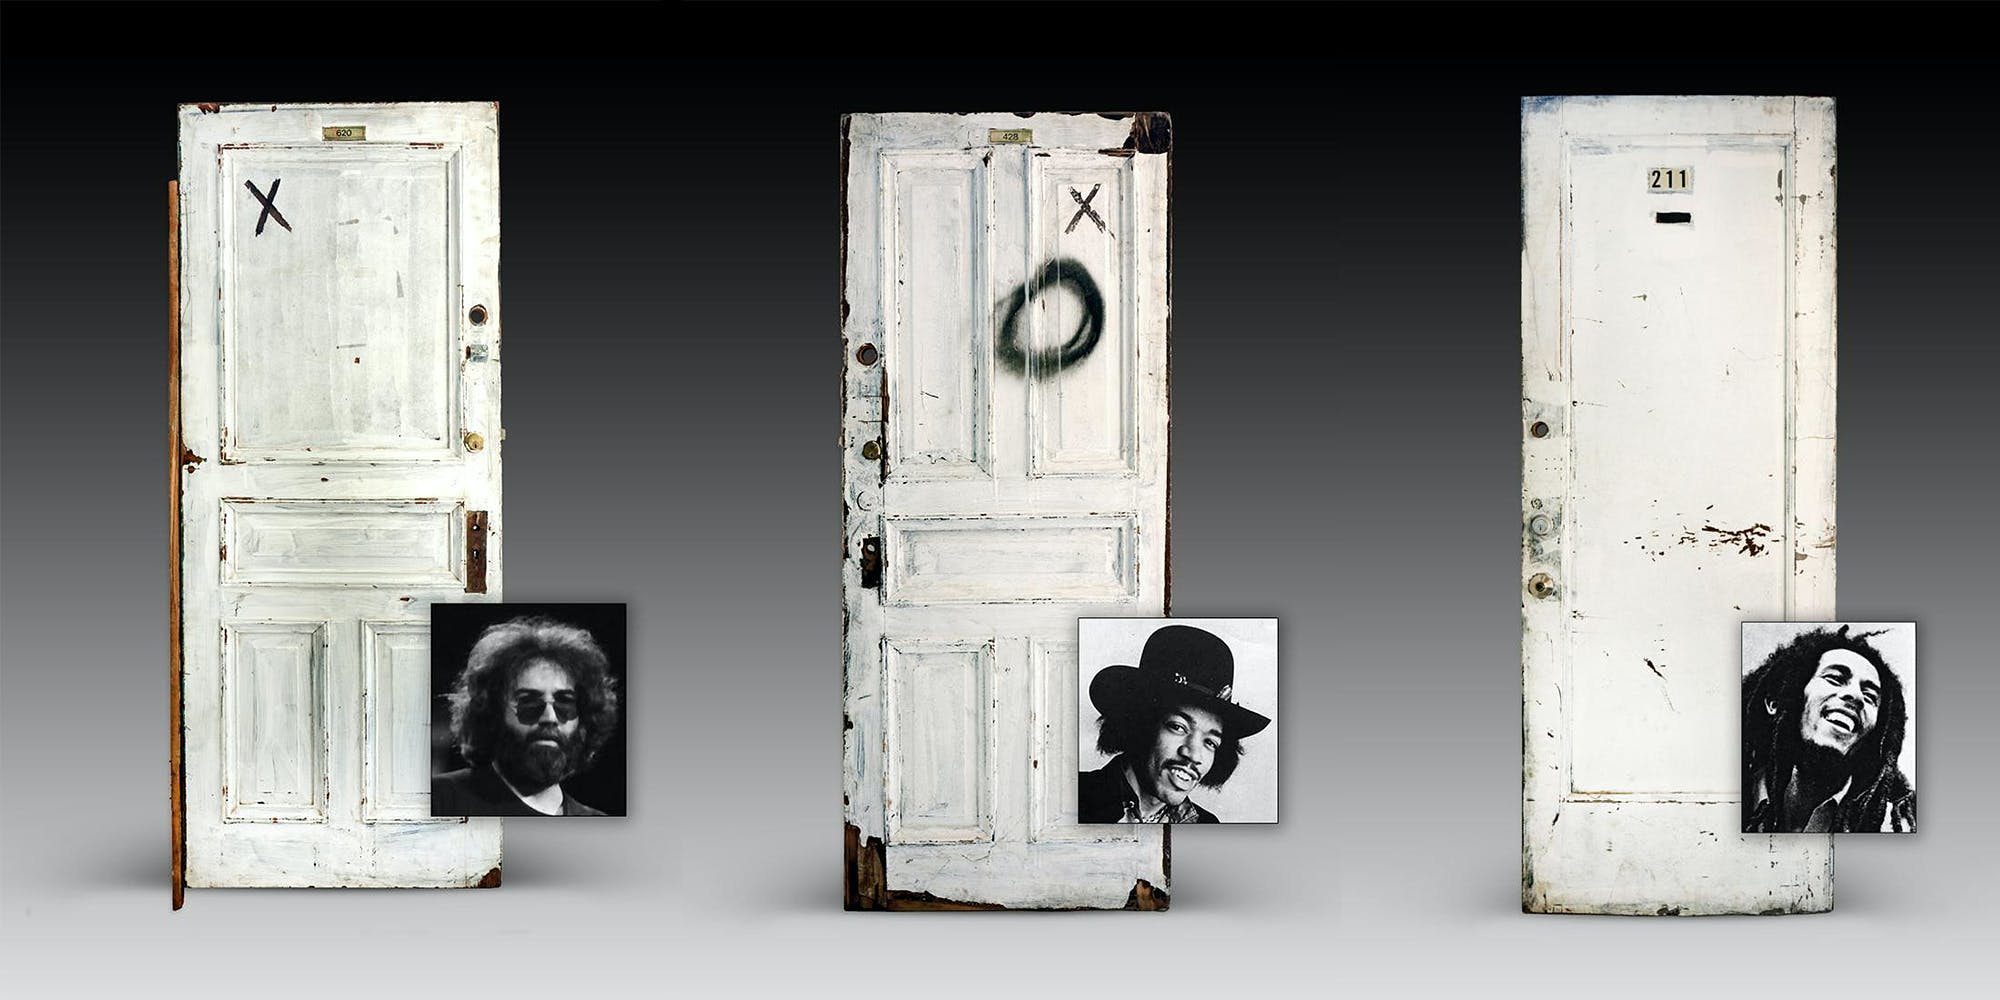 The Chelsea Hotel To Auction Off Doors Belonging To Jimi Hendrix, Bob Marley, and More